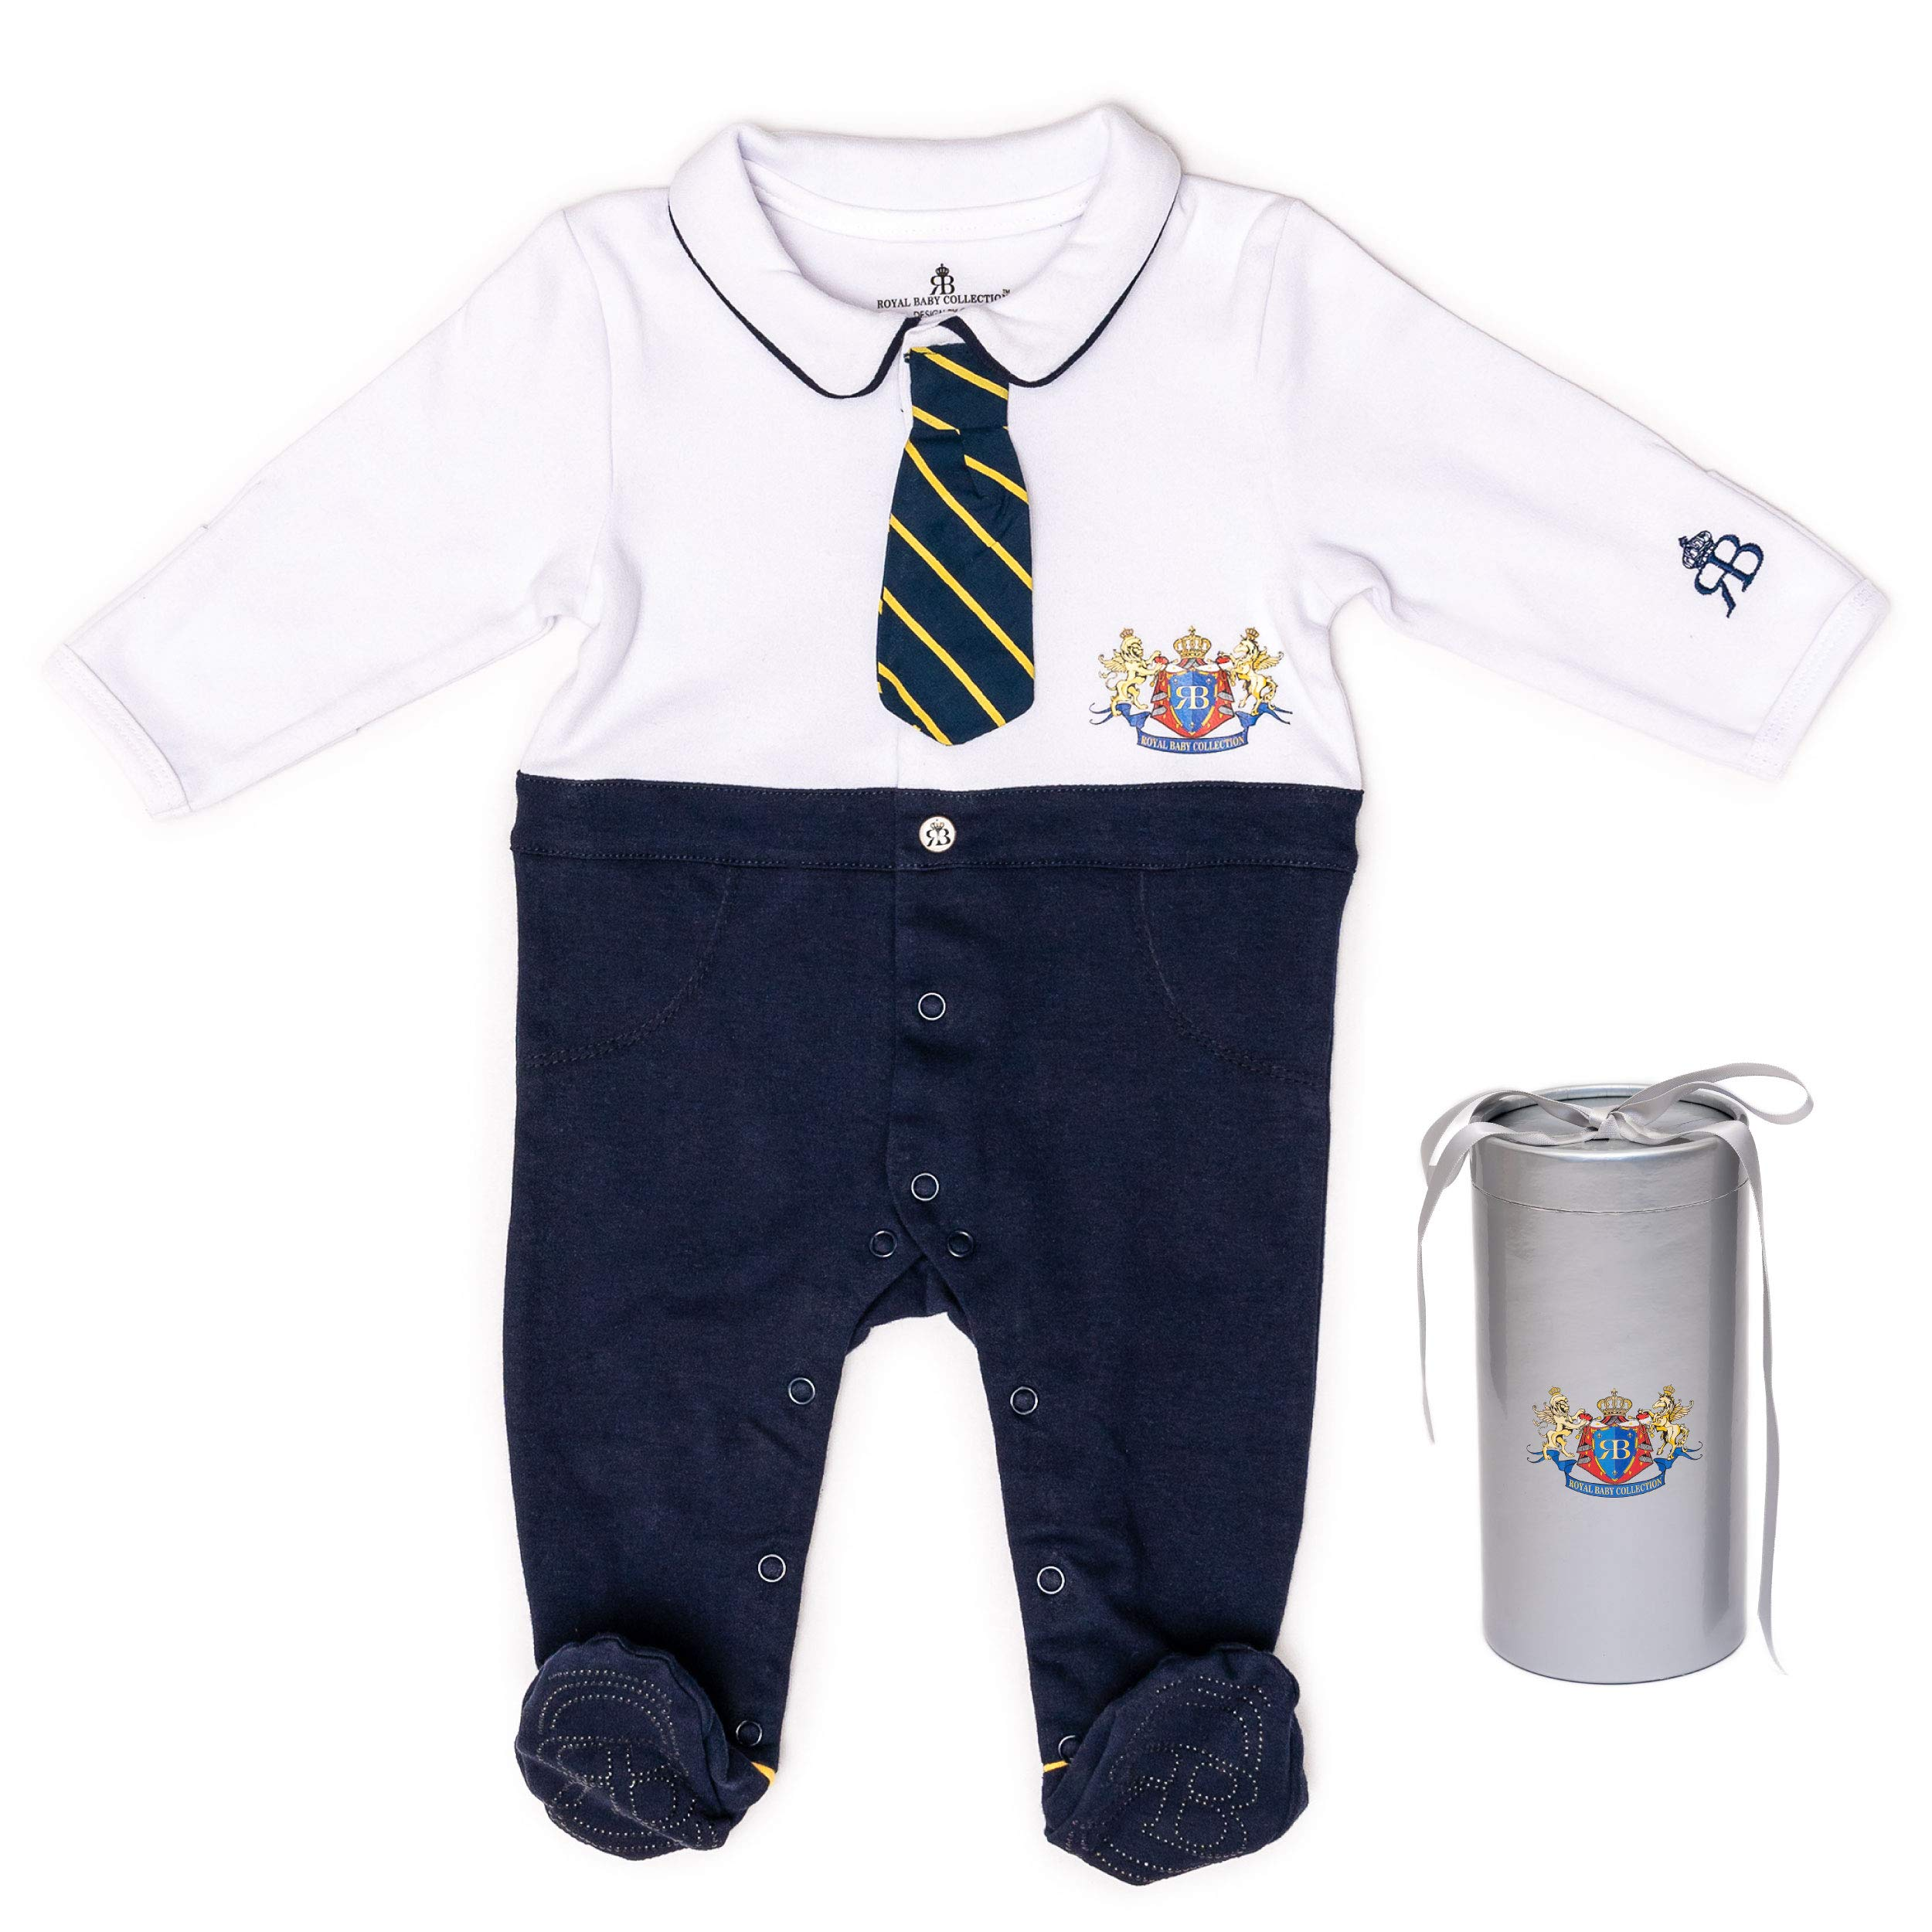 RB Royal Baby Organic Cotton Gloved-Sleeve Footed Overall, Footie in Gift Box (Little Man) White Navy